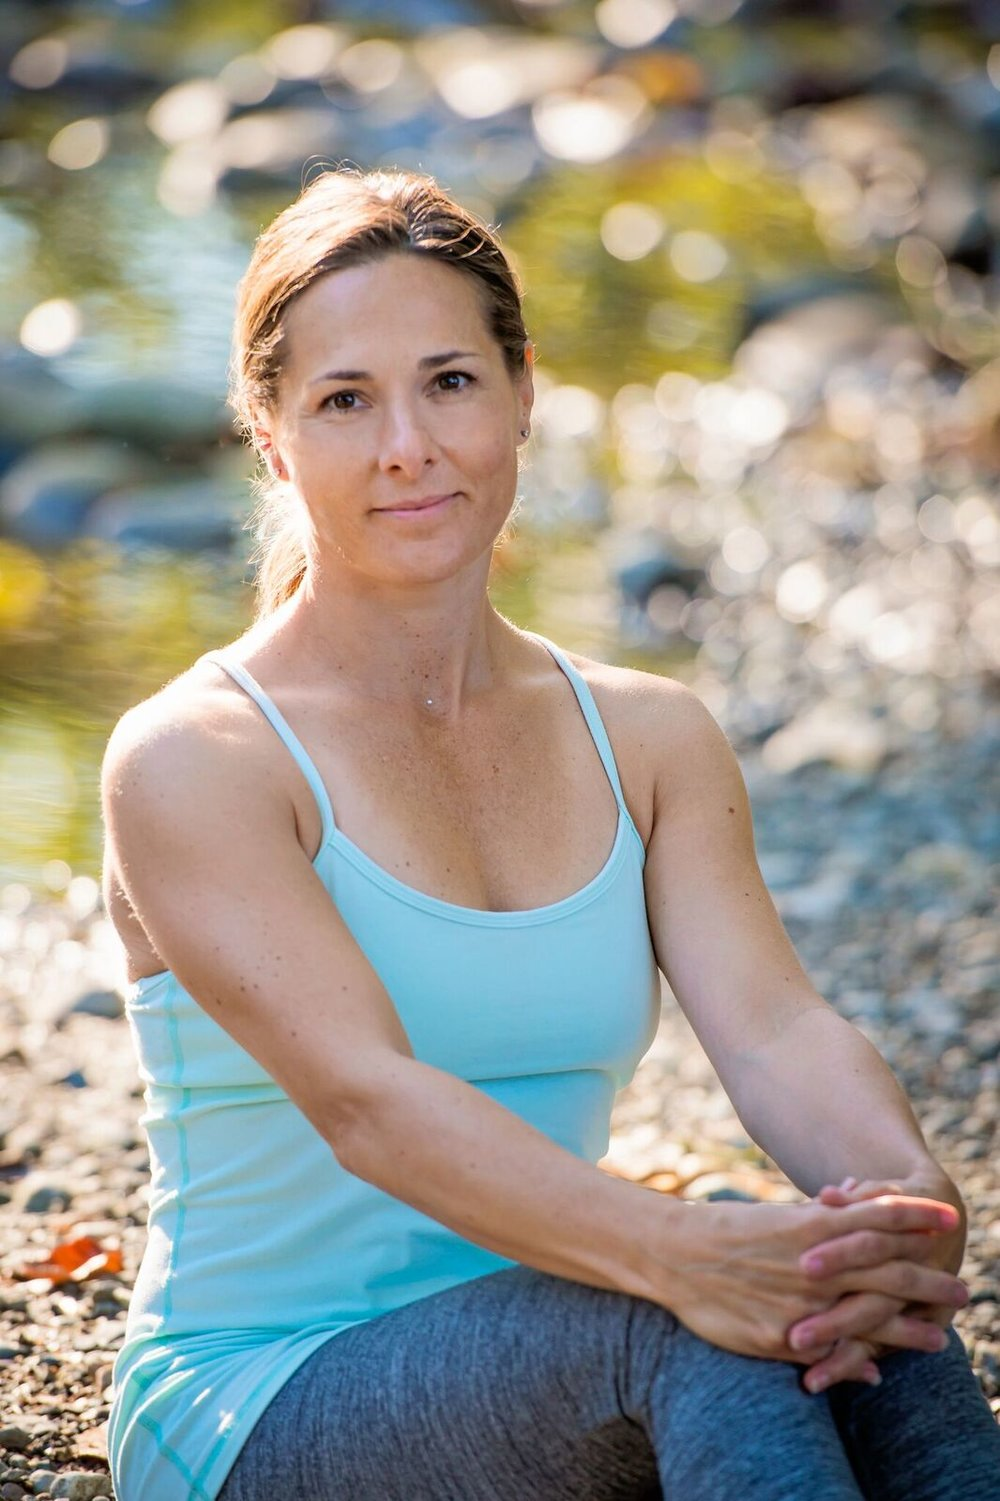 "Lori Charko   Certified in Classical Hatha yoga in 2001, Lori since has over 500 hours of certifications and qualified experience in Yin Yoga, Prenatal Fitness, Mom & Baby Yoga and Anusara Yoga. Including her former years of Advanced Personal Training, she has over 24 years of experience teaching fitness and yoga. Lori's SFU kinesiology education, nutrition, fitness and yoga studies, along with her world travels and an authentic caring nature, have her guiding dynamic, safe and enjoyable classes. Inspired by teachers such as Sarah Powers, Seane Corn, Rod Stryker, Bernie Clarke and Lila Rasa Brown, Lori loves to diversify teachings by incorporating yogic philosophy and positive lifestyle themes into her classes. Lori believes that personal wellness comes from the fulfillment of physical, mental, emotional and spiritual needs. An appropriate balance of these needs results in a life of health and happiness. It can be said that those who partake in her yoga commonly experience a ""connection to self"" and a ""sensation of peacefulness"".  Peace and Body Harmony to All, Namaste"